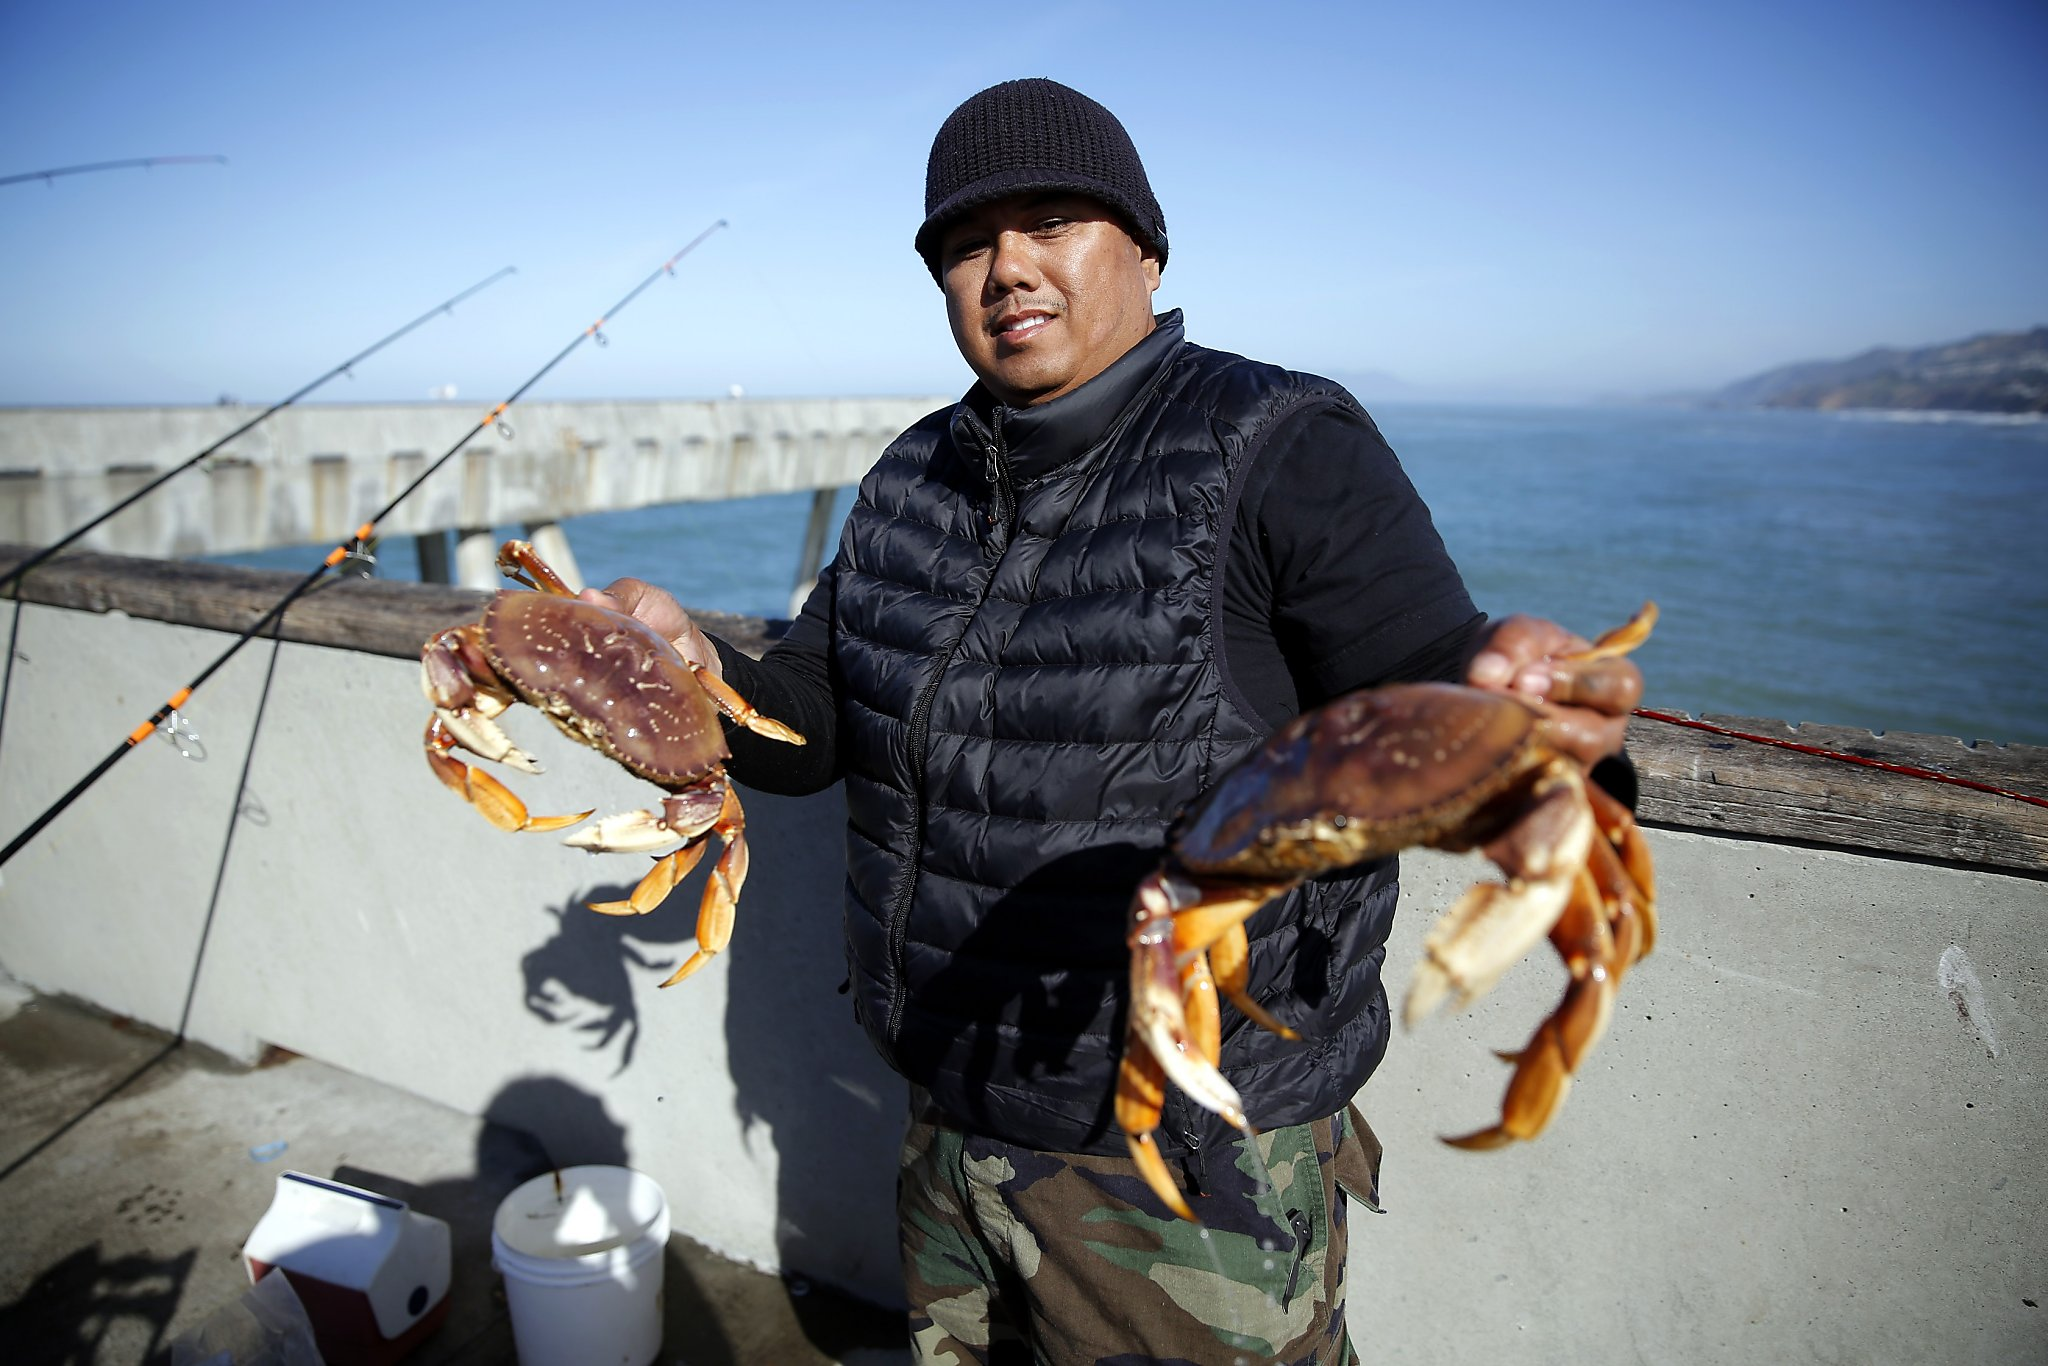 The only way to get local dungeness crab catch them for Crab fishing oregon